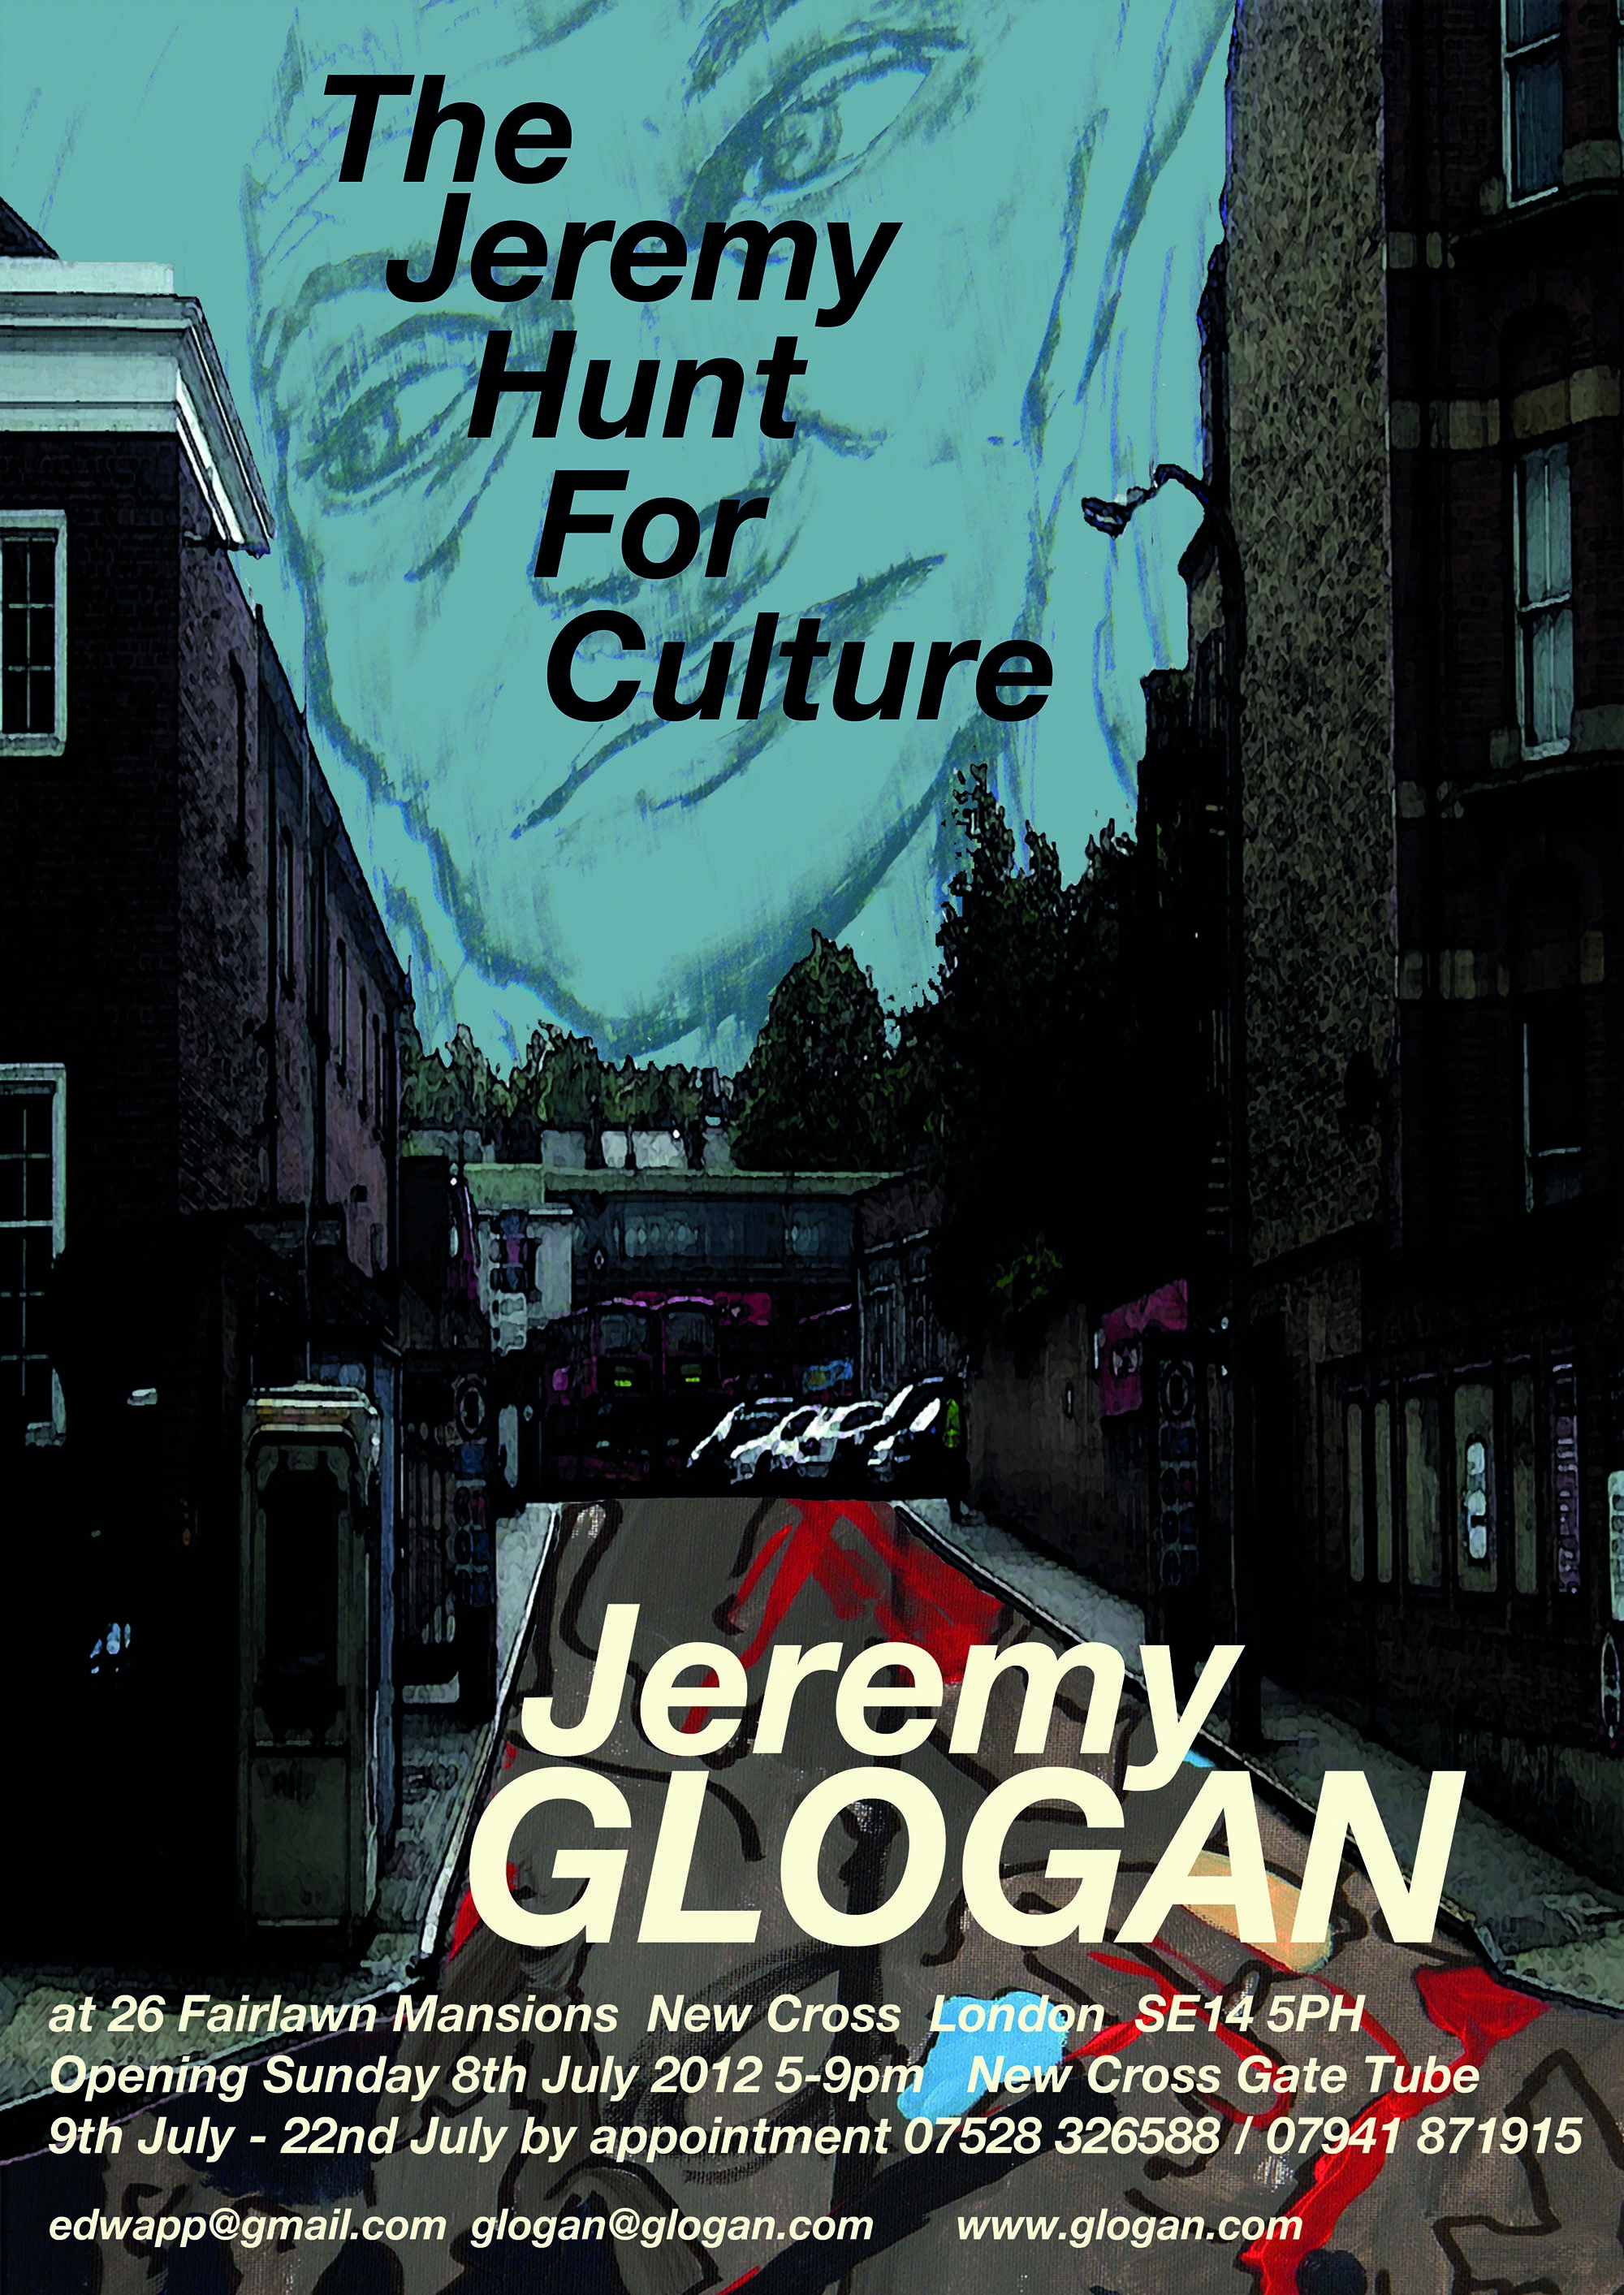 exhibition by Jeremy Glogan